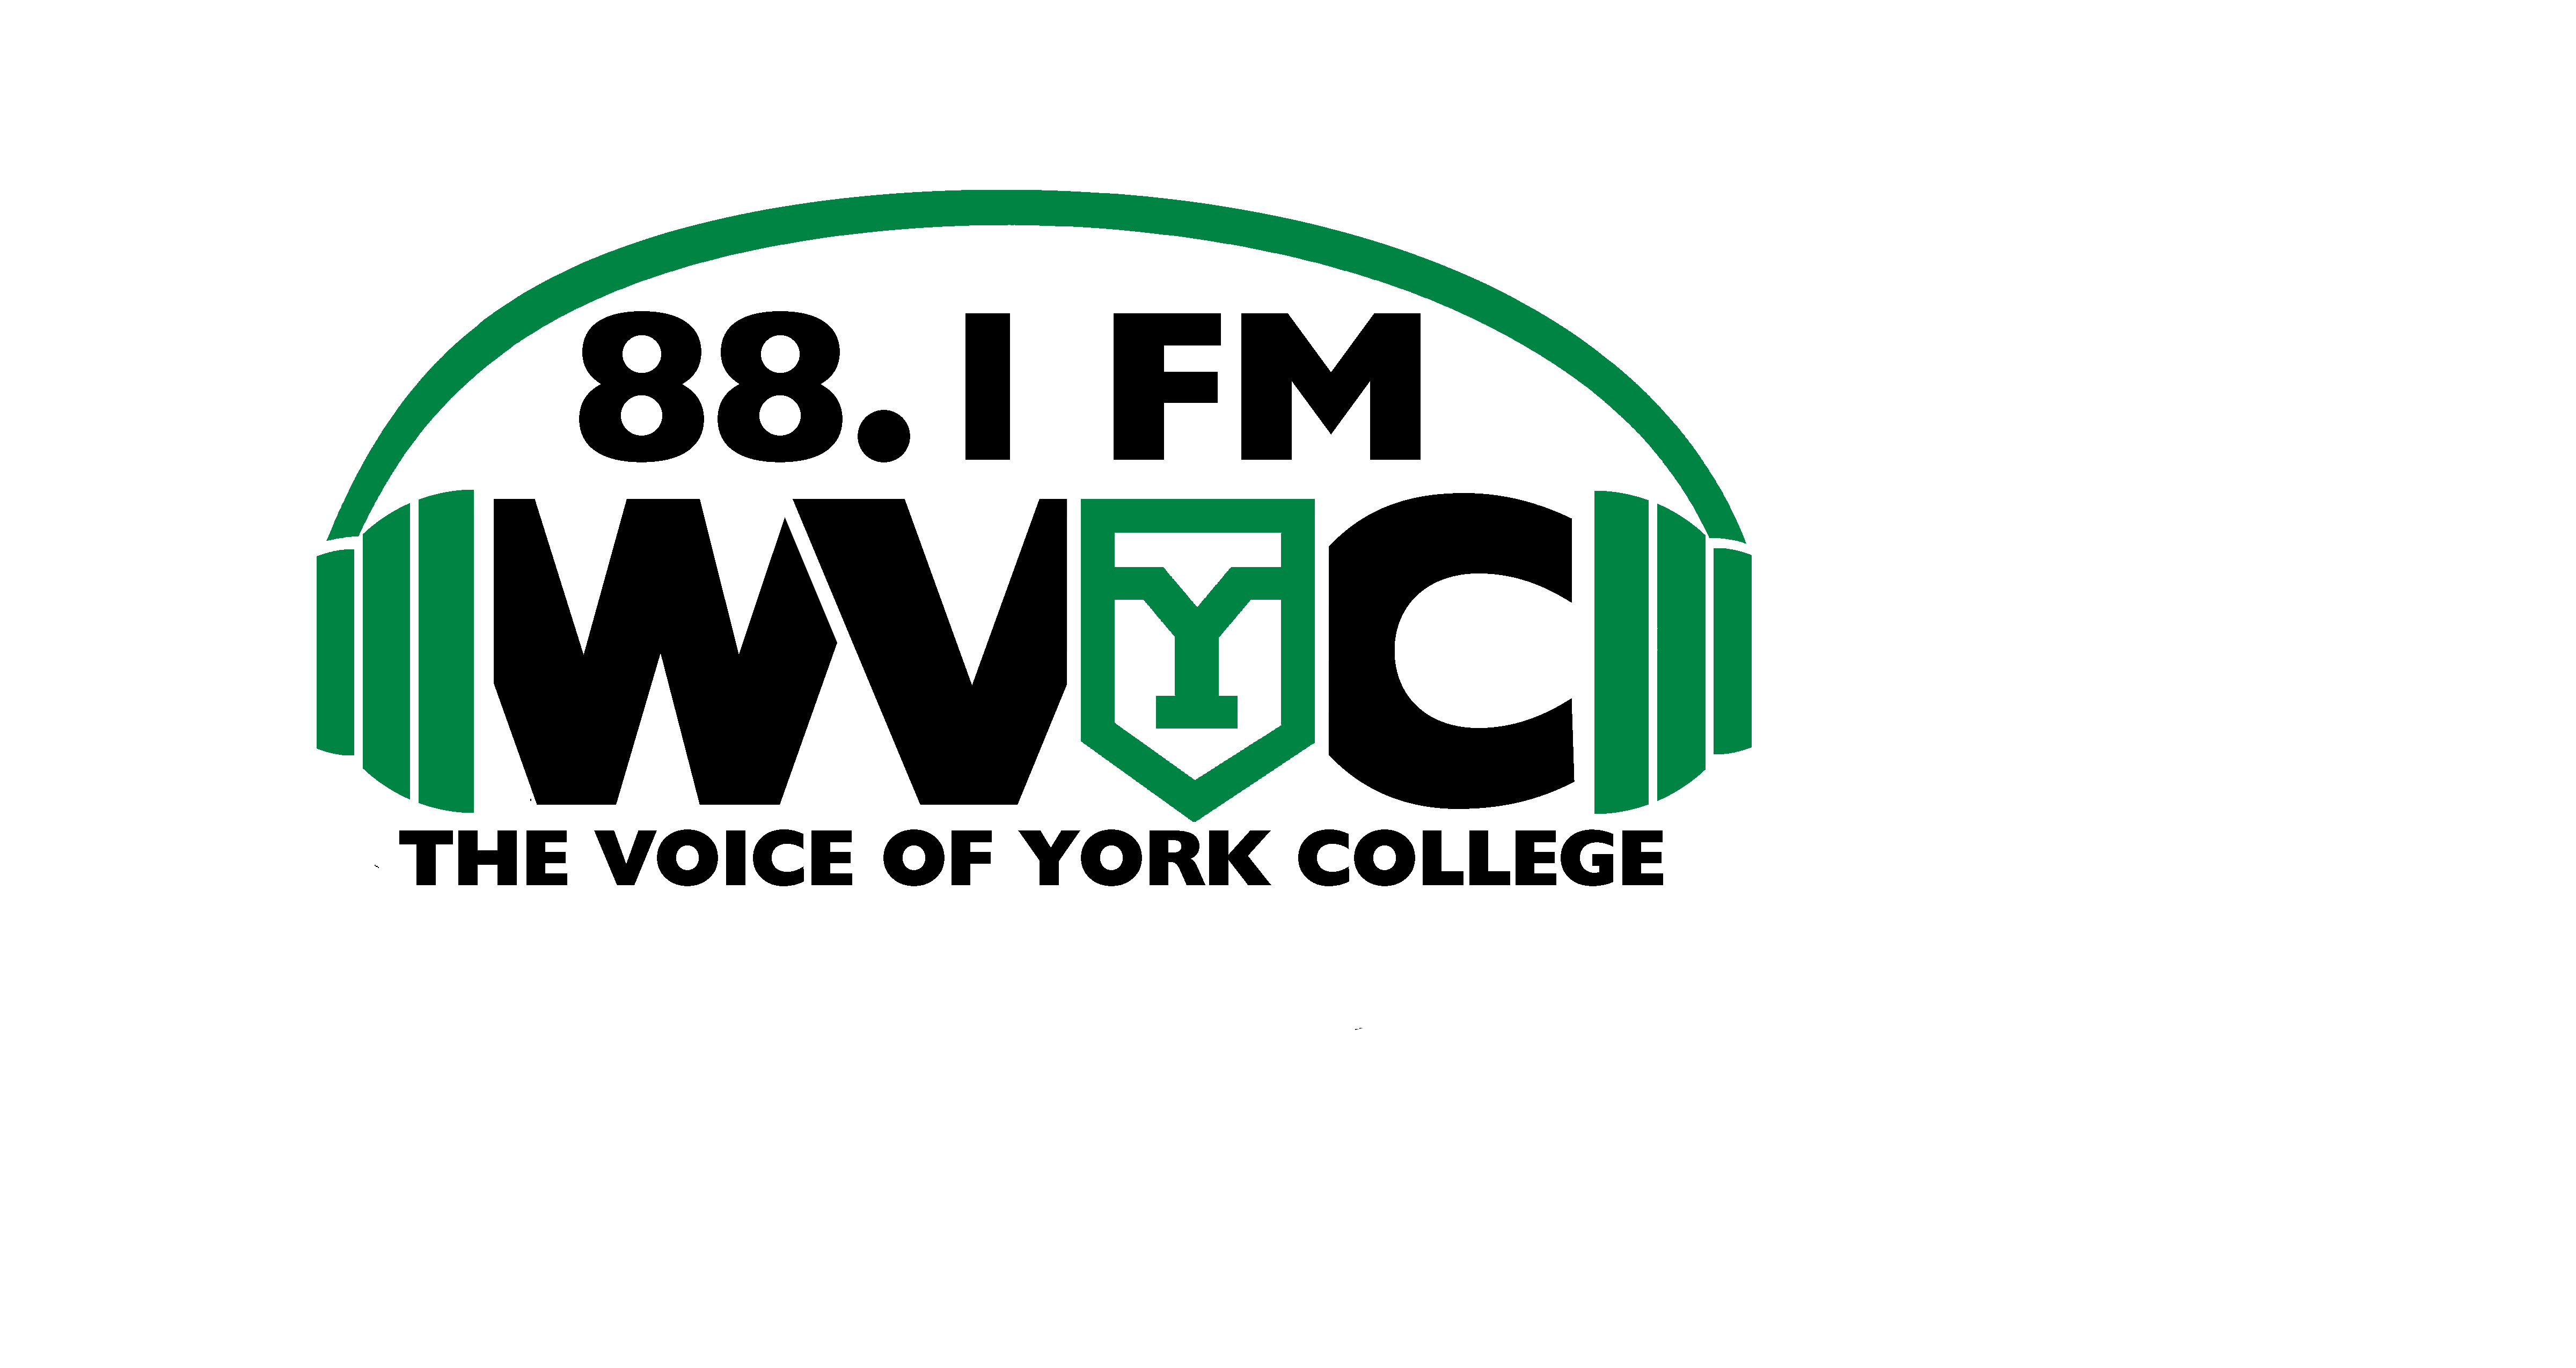 WVYC-FM The Voice of York College